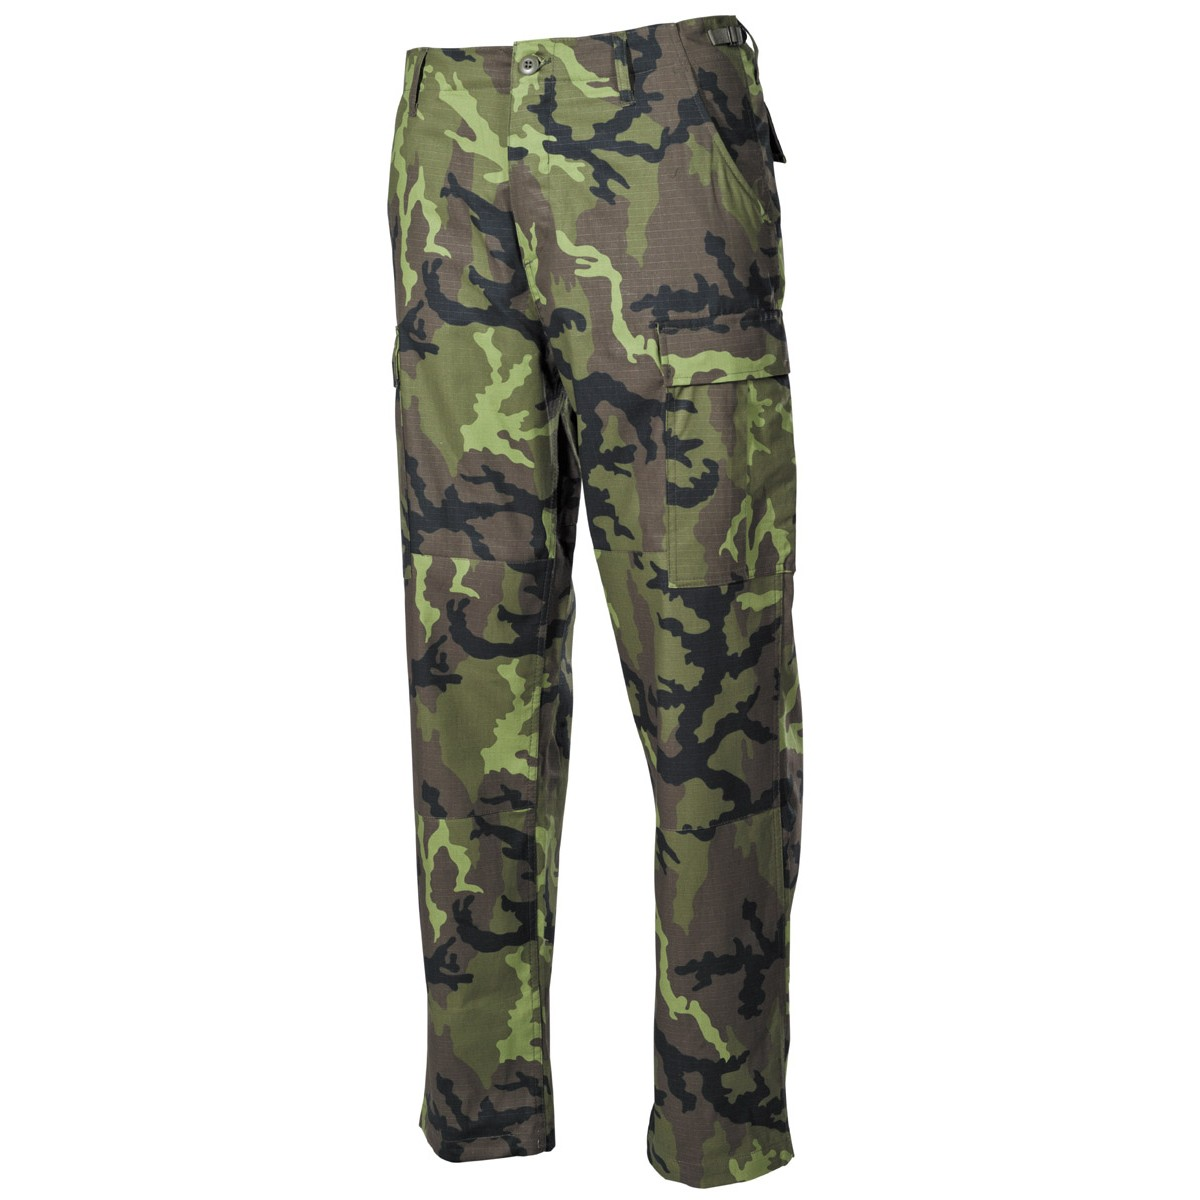 Professional BDU Battle Field Trousers Pants Rip-Stop Czech Army M95 Camo